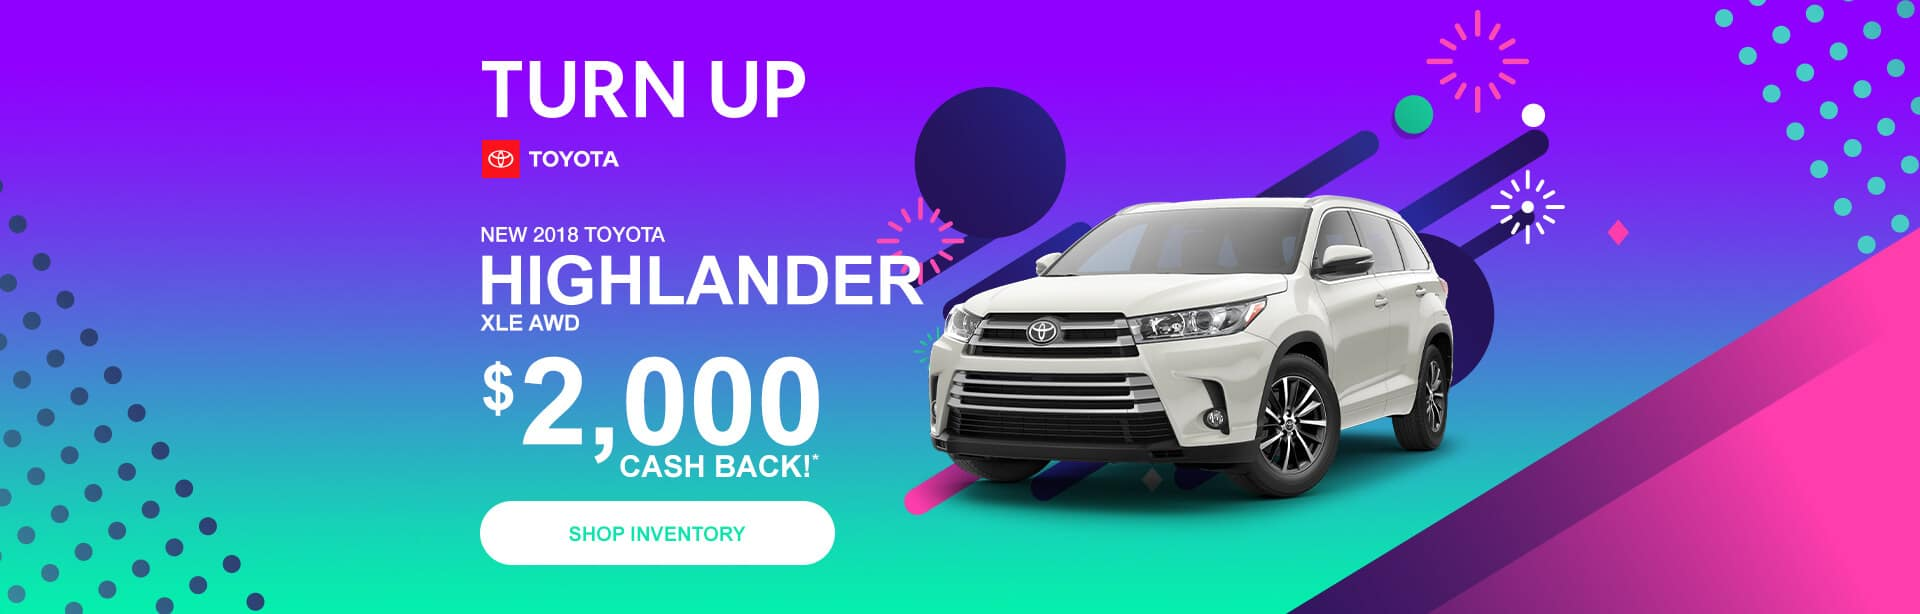 Toyota Highlander Cash Back during the Turn Up Sales Event.